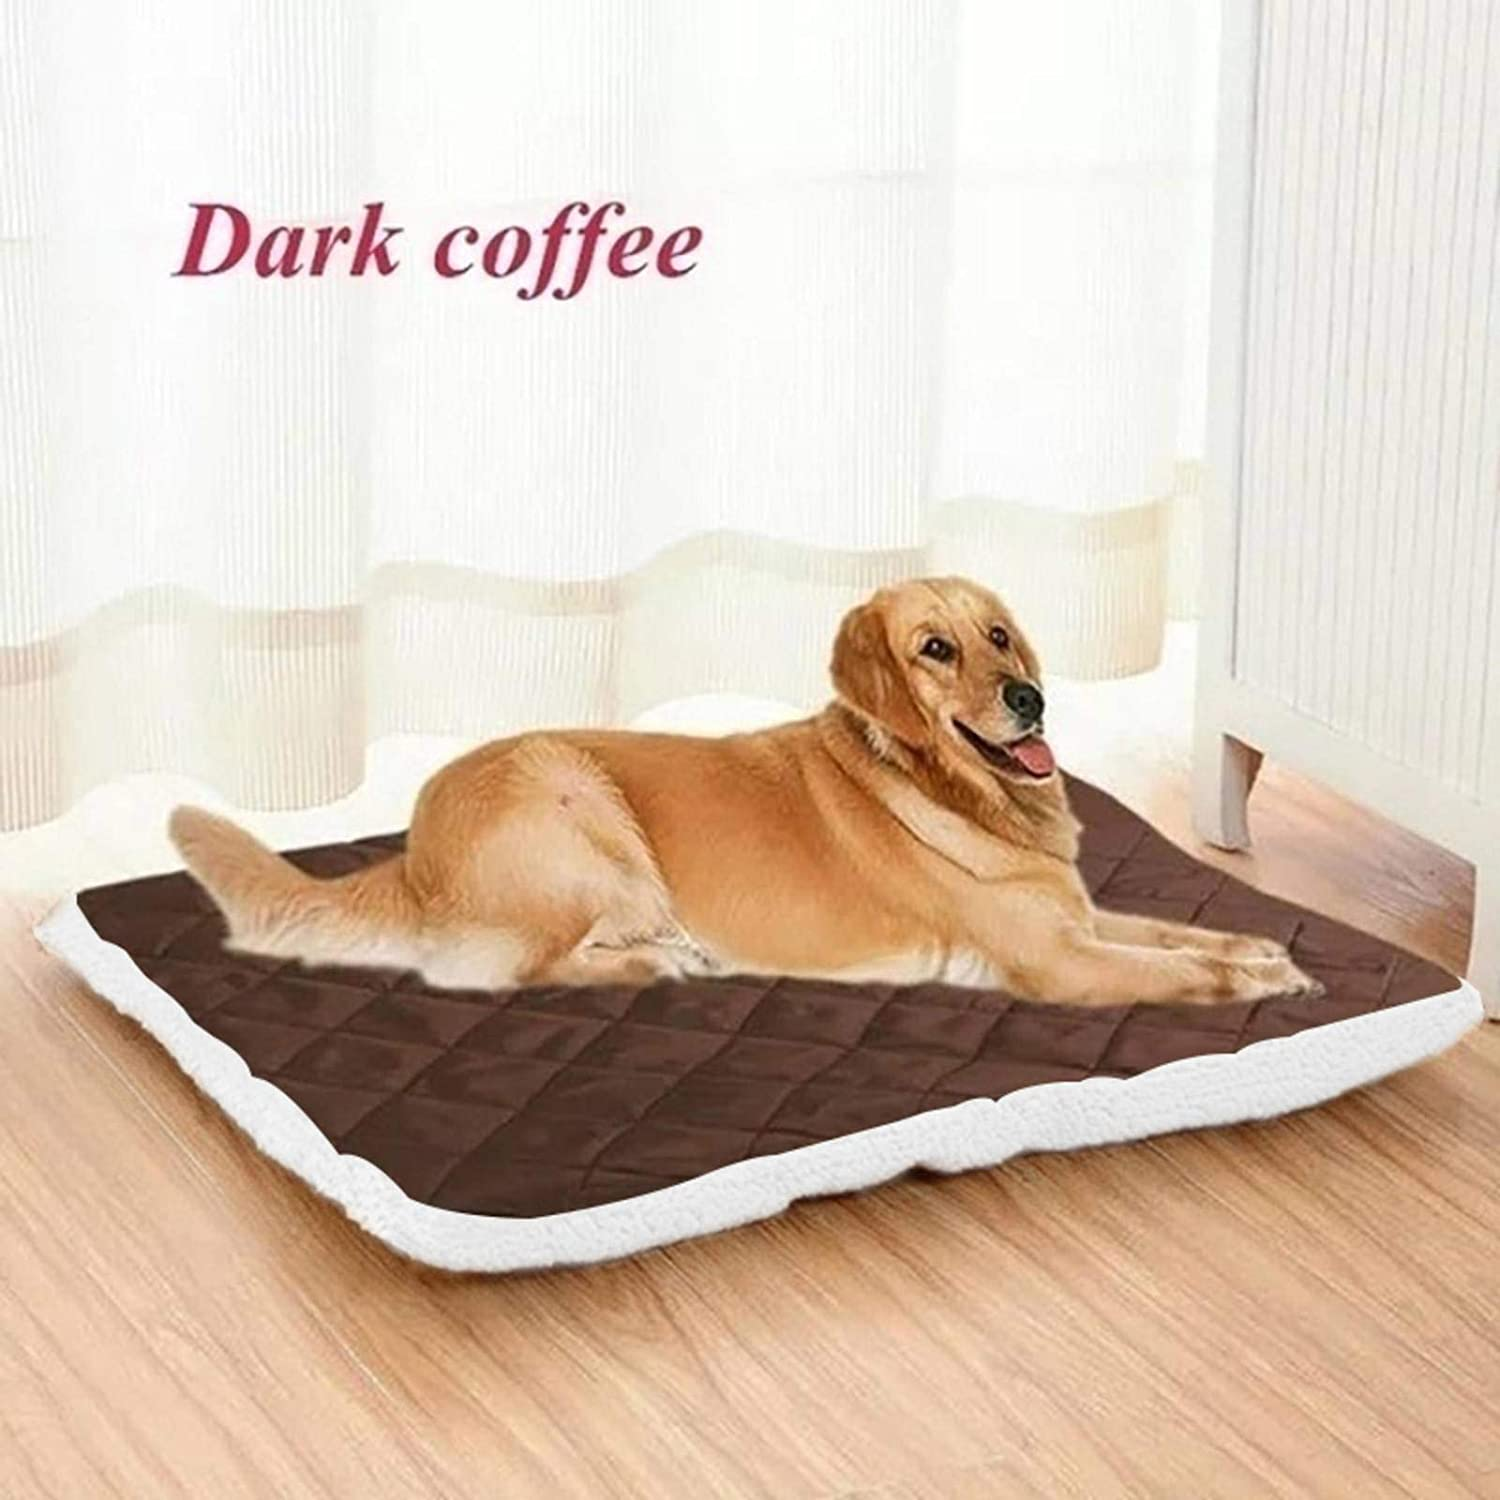 N-B Pet Litter Plush Pet Mat Soft and Warm Dog Cat Bed Kennel Puppy Sleeping Bed Small and Medium-Sized Large Dog Pet Blanket